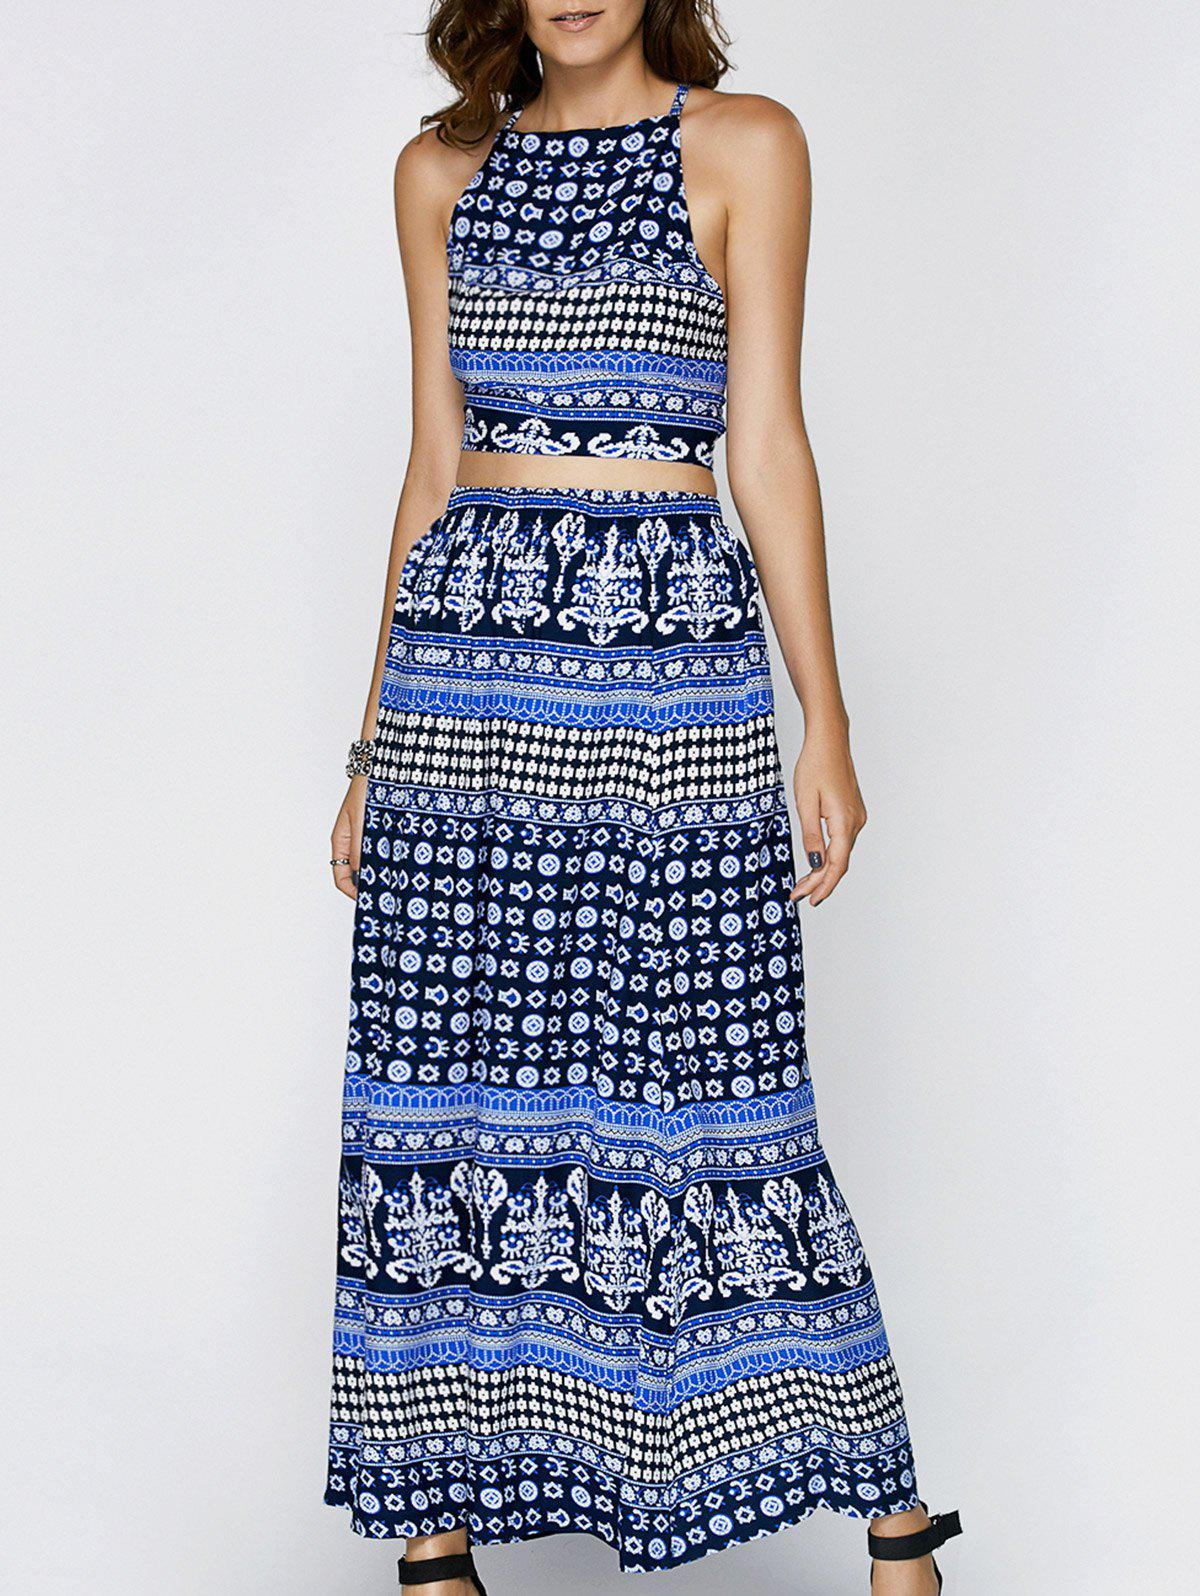 Stylish Women's Printed Backless Top + Maxi Skirt Twinset